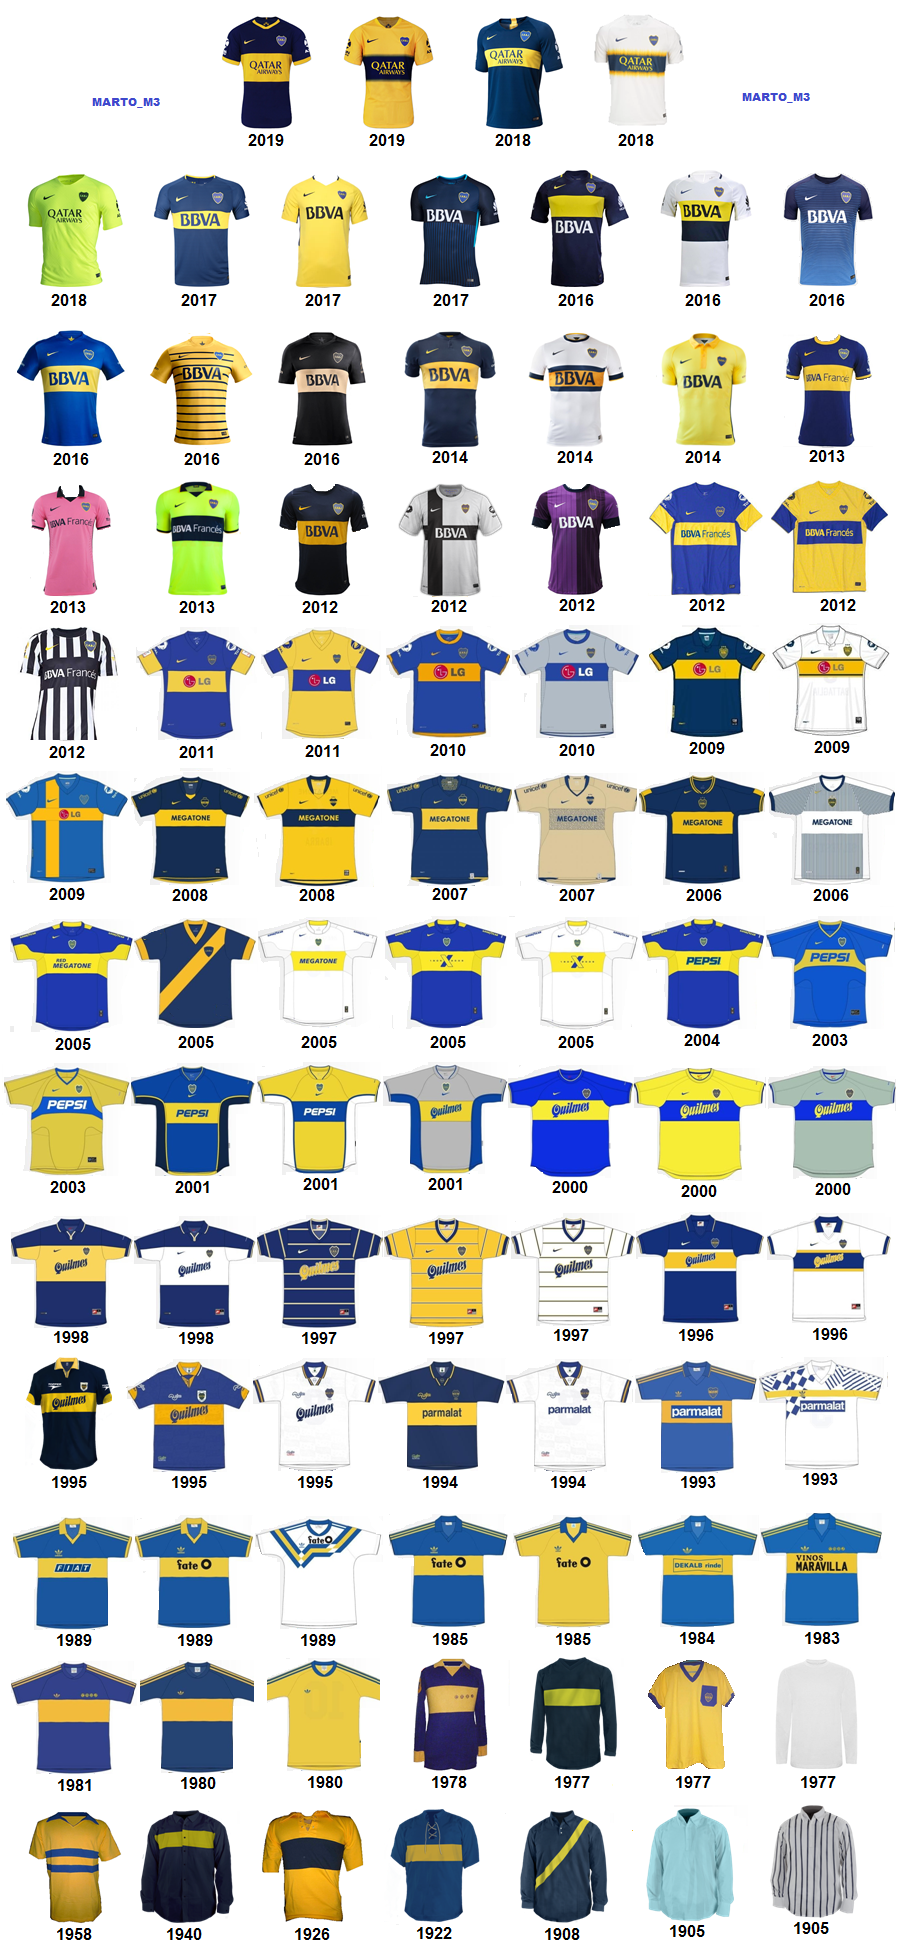 CAMISETAS DE BOCA JUNIORS 1905 - 2019